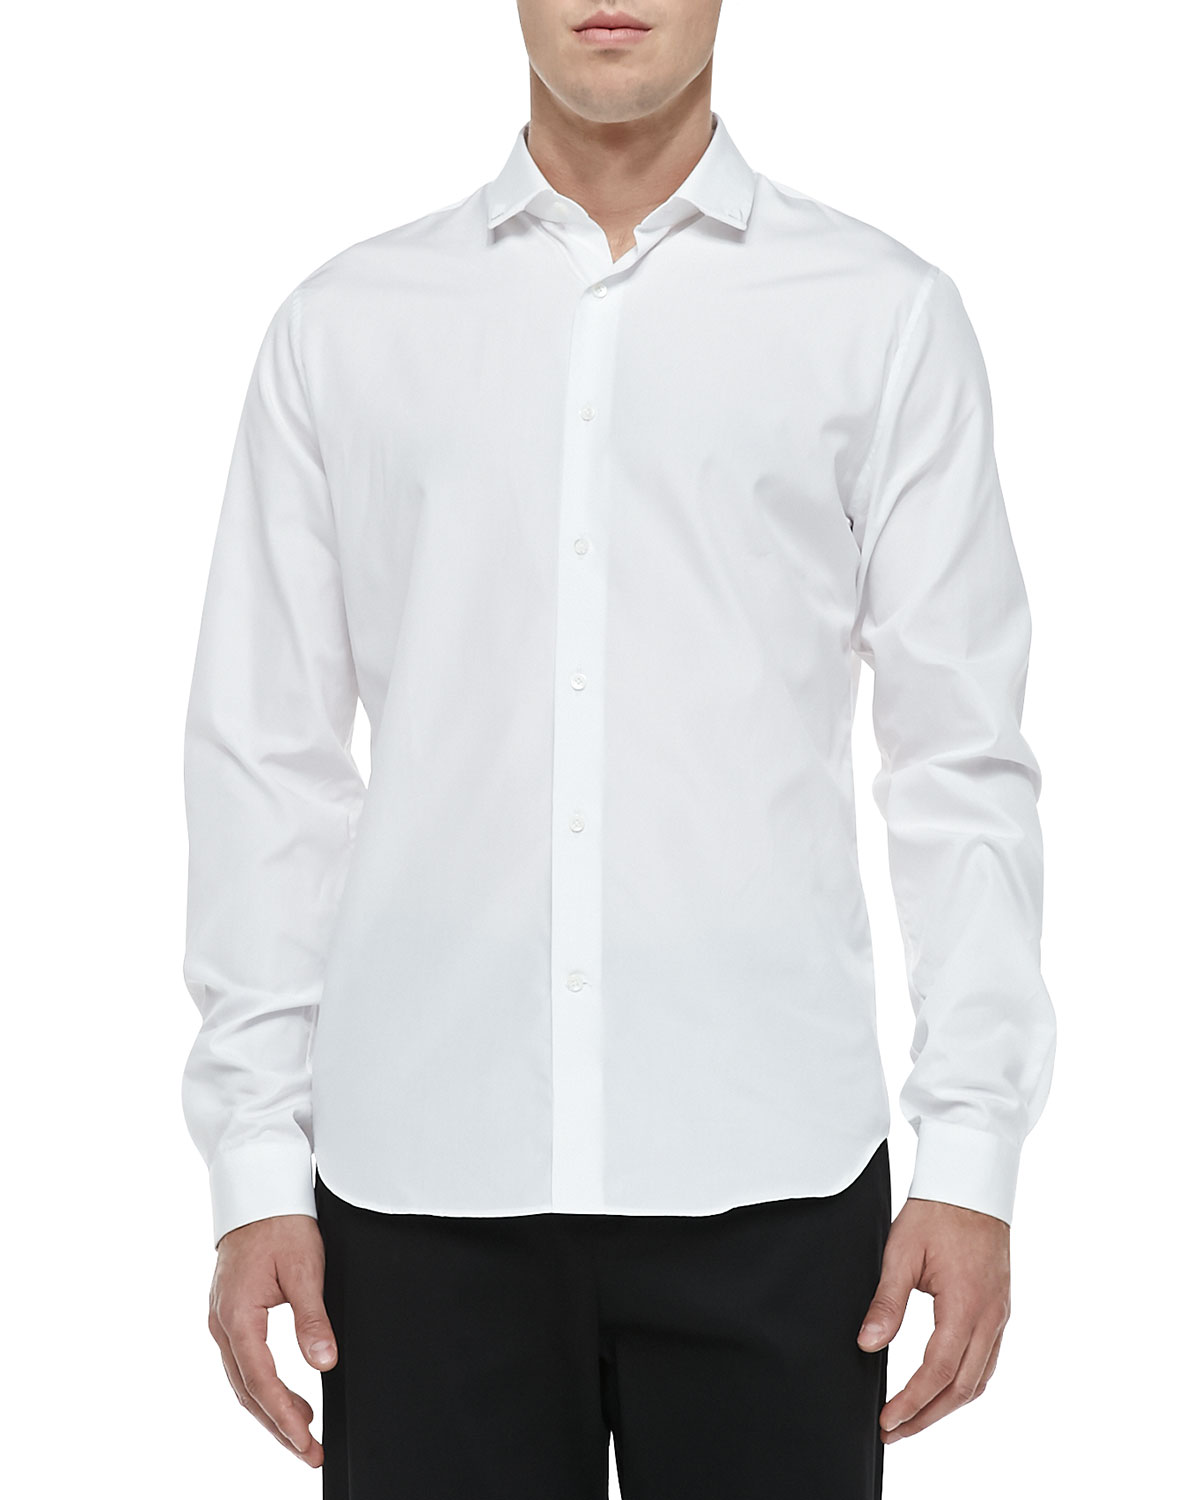 Stud-Collar Button-Down Shirt, White